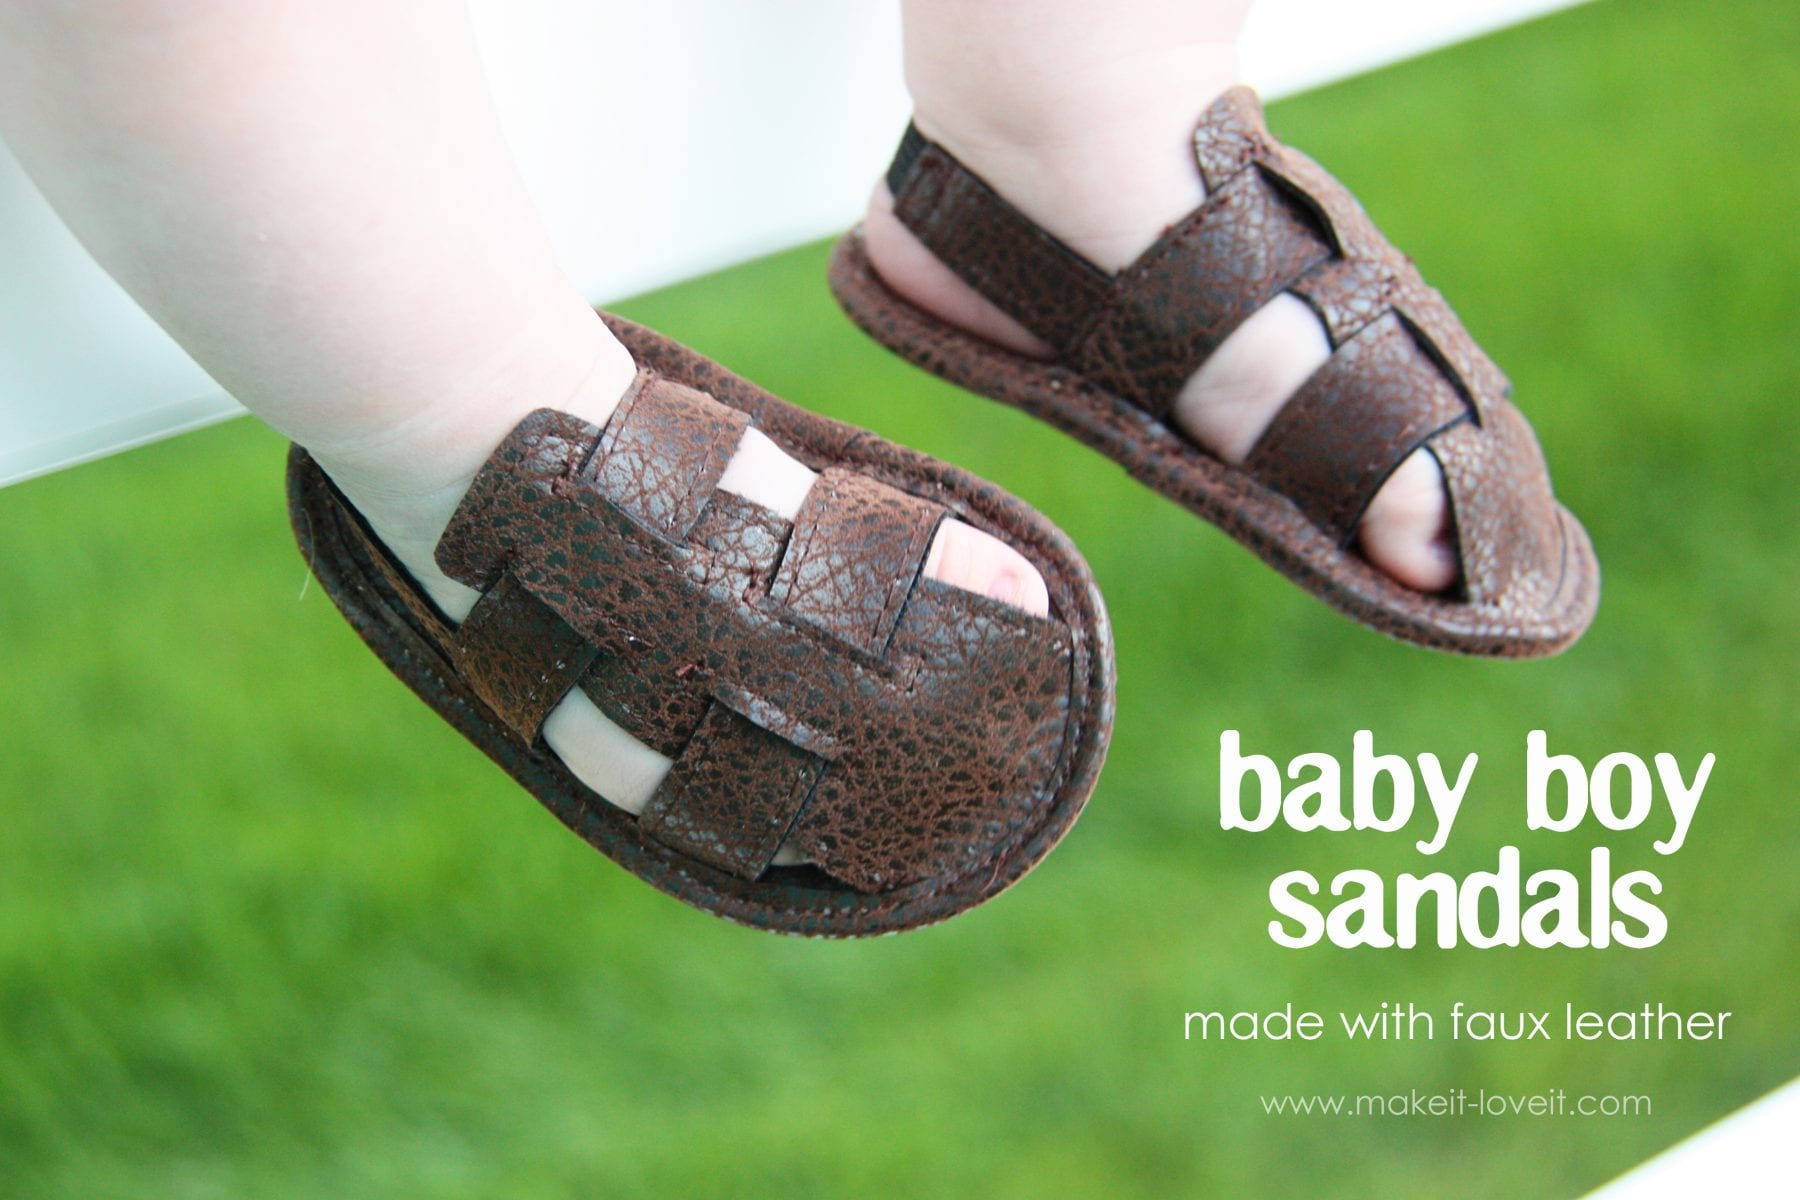 Baby BOY sandals made with faux leather